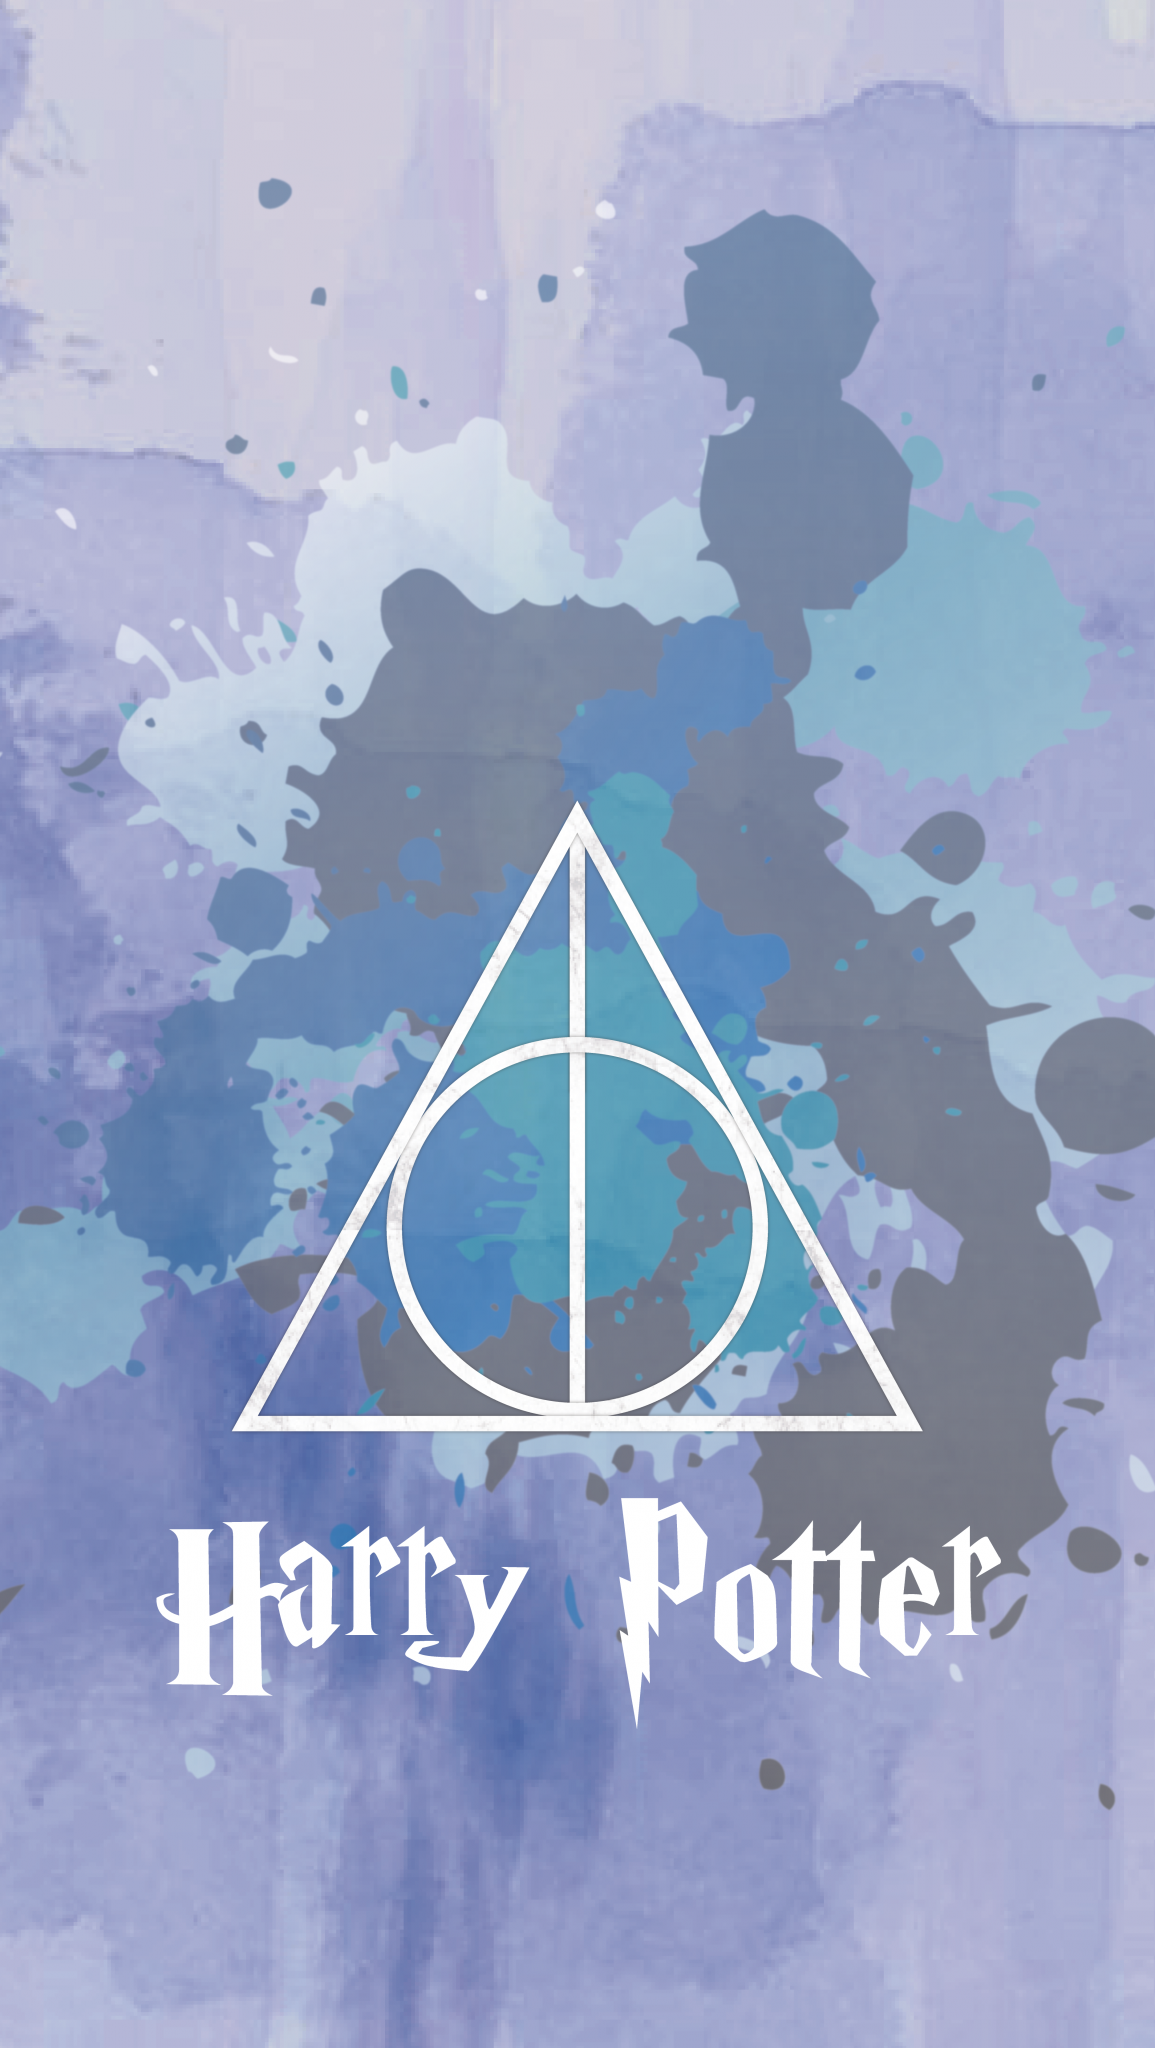 Simple Wallpaper Harry Potter Colorful - 19bdc6545feea44f20902d1697c43138  Gallery_185641.png